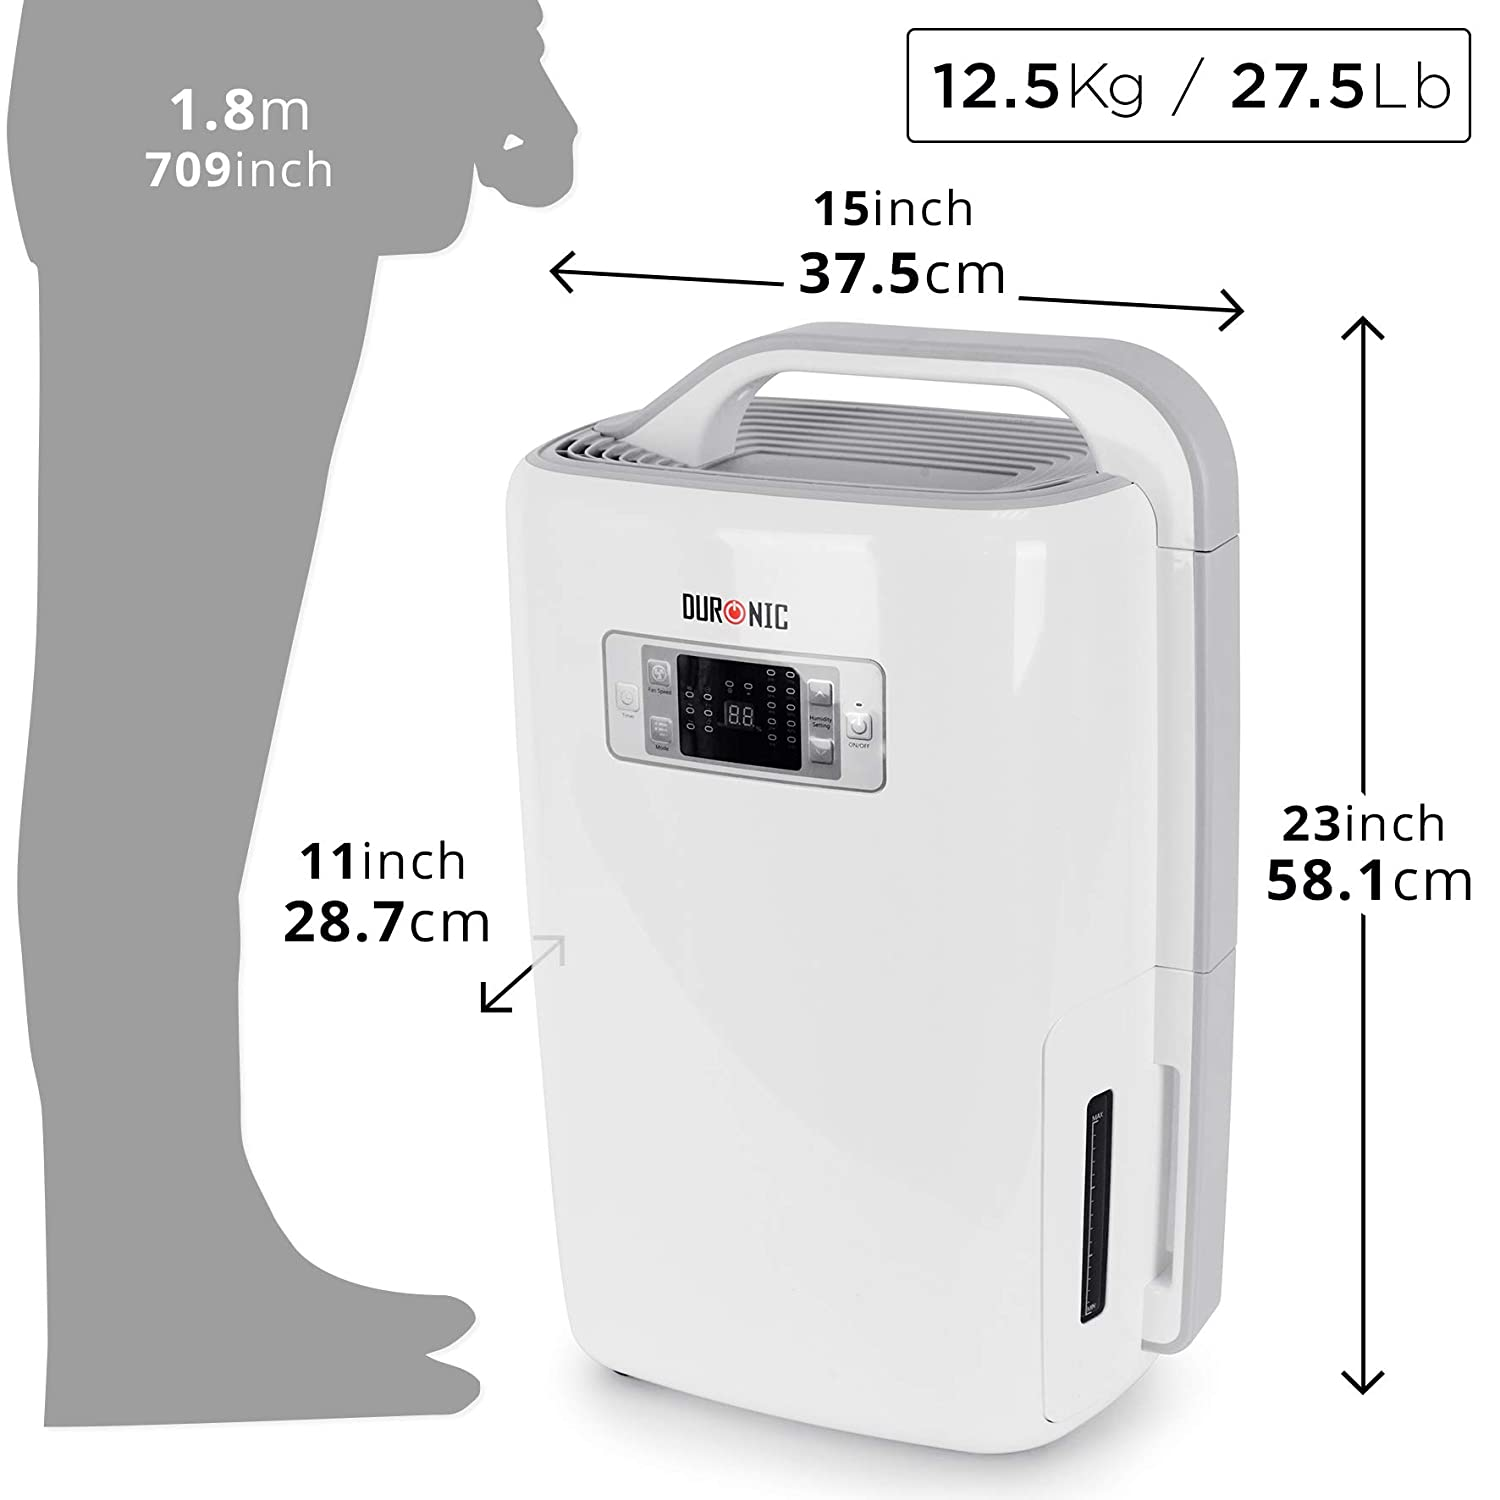 Moisture and Condensation Office Ultra-Quiet Digital Display Duronic DH20 20L Dehumidifier 320W Laundry Dryer Removes Mould 4L Tank Capacity Damp Home 3 Speeds Timer Caravan